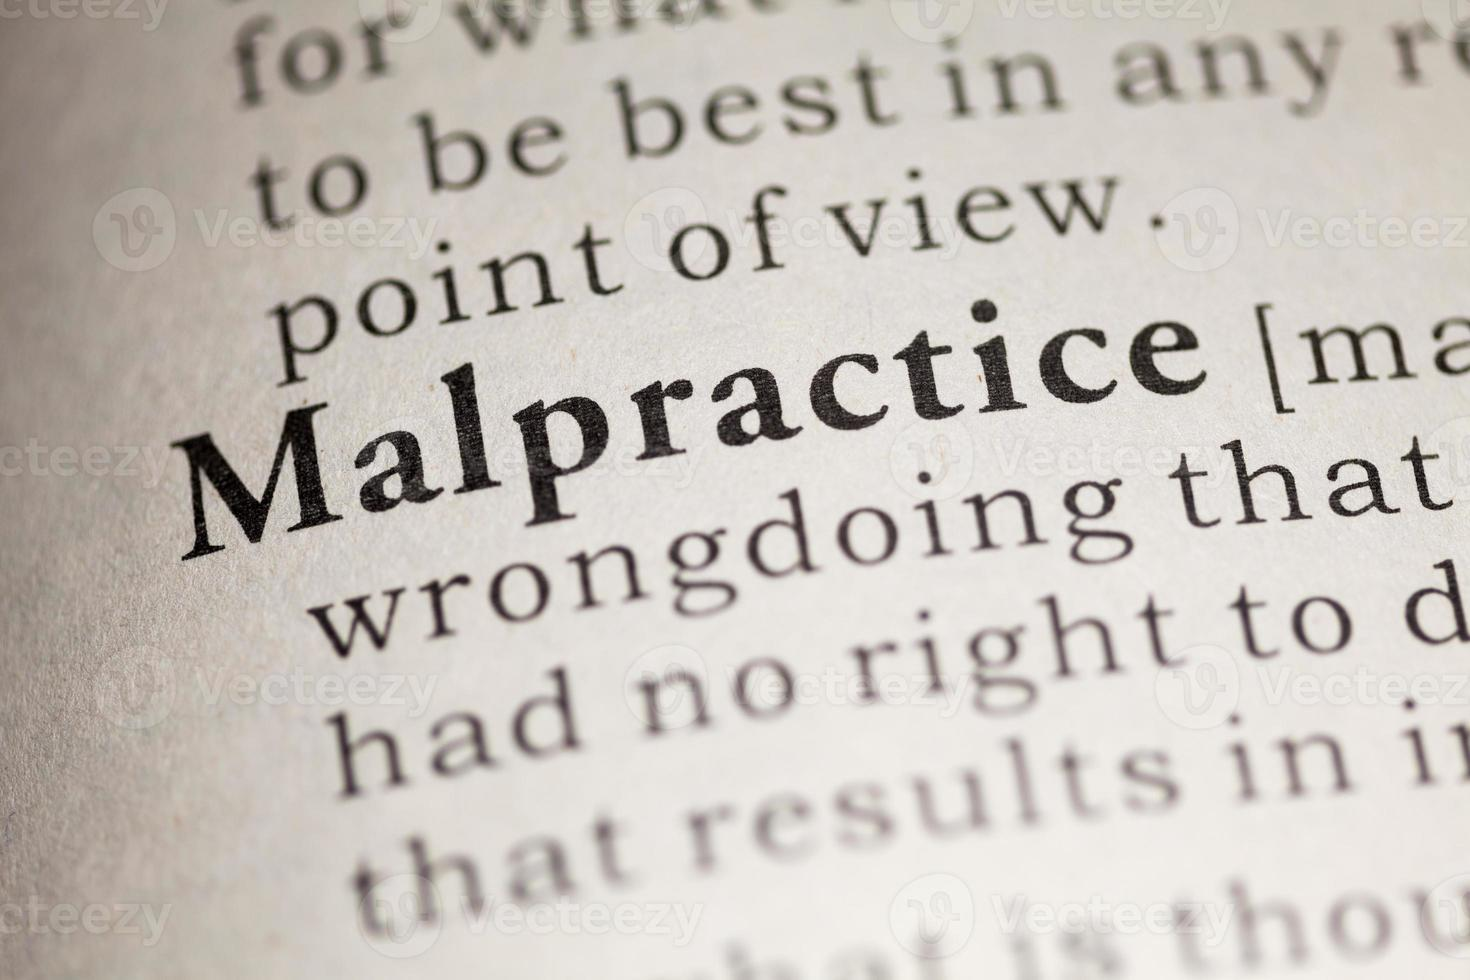 Definition of malpractice in dictionary photo